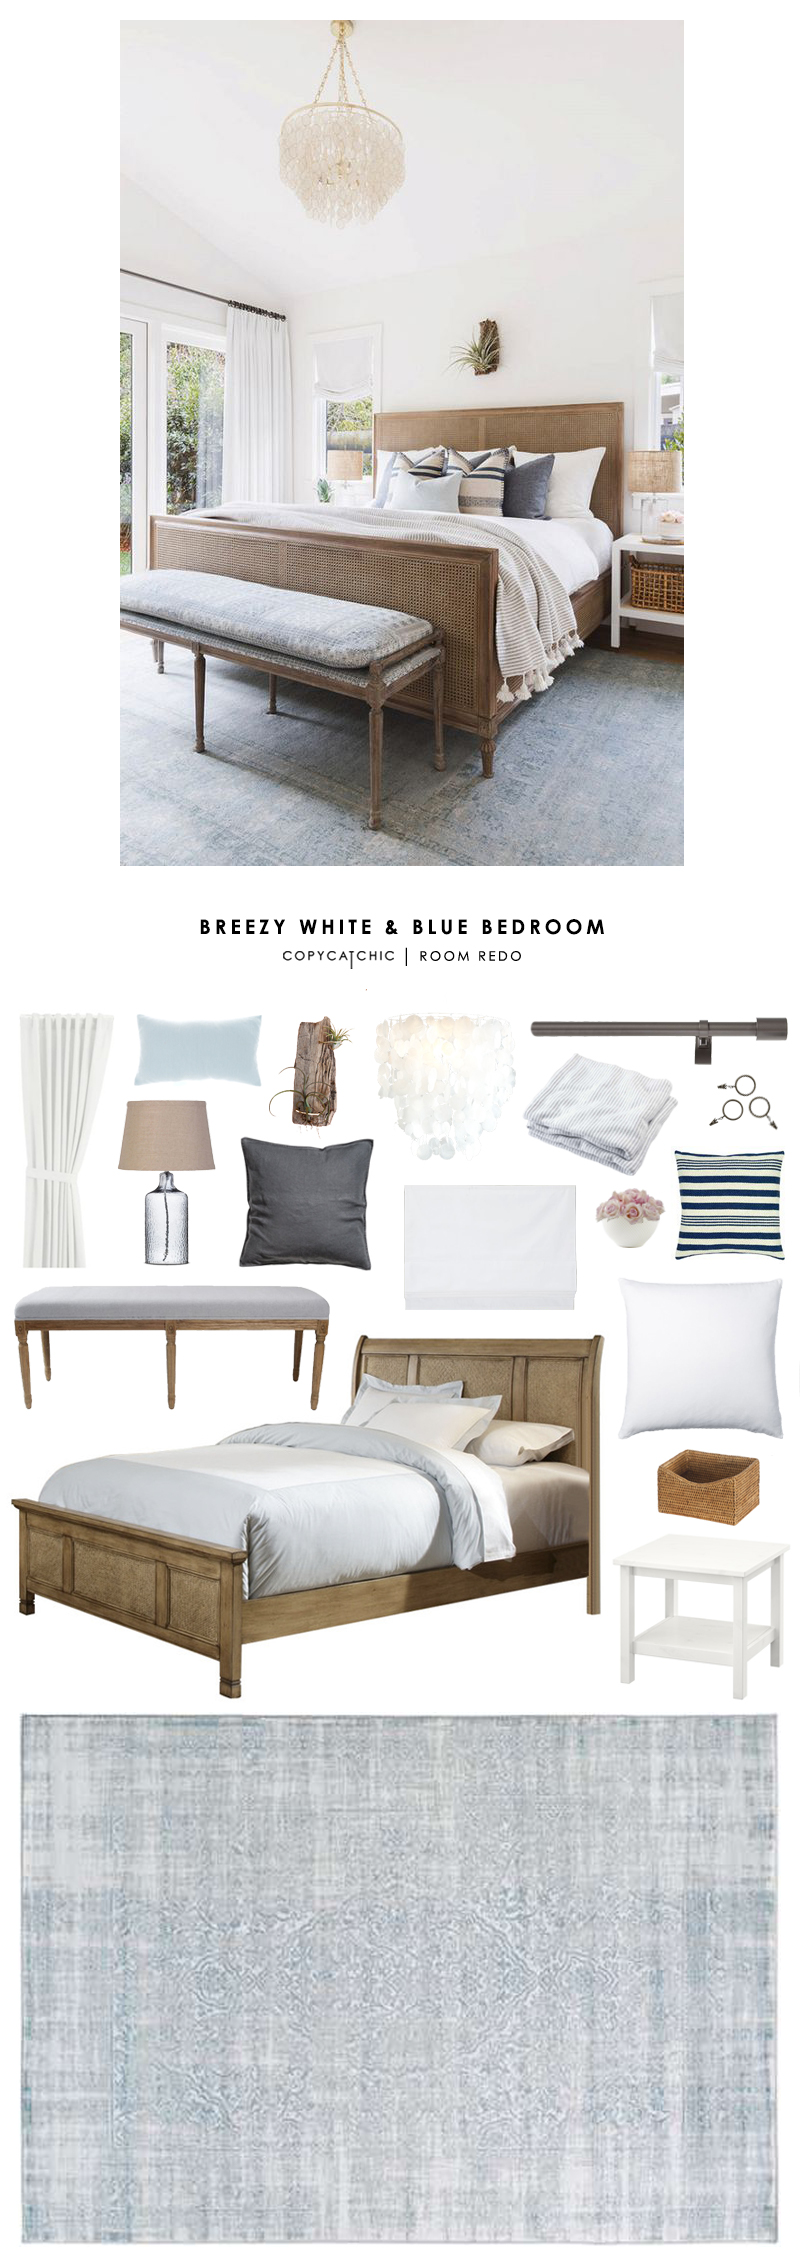 A Beachy Breezy Blue Bedroom By Amanda Barnes Featured On My Domaine Gets